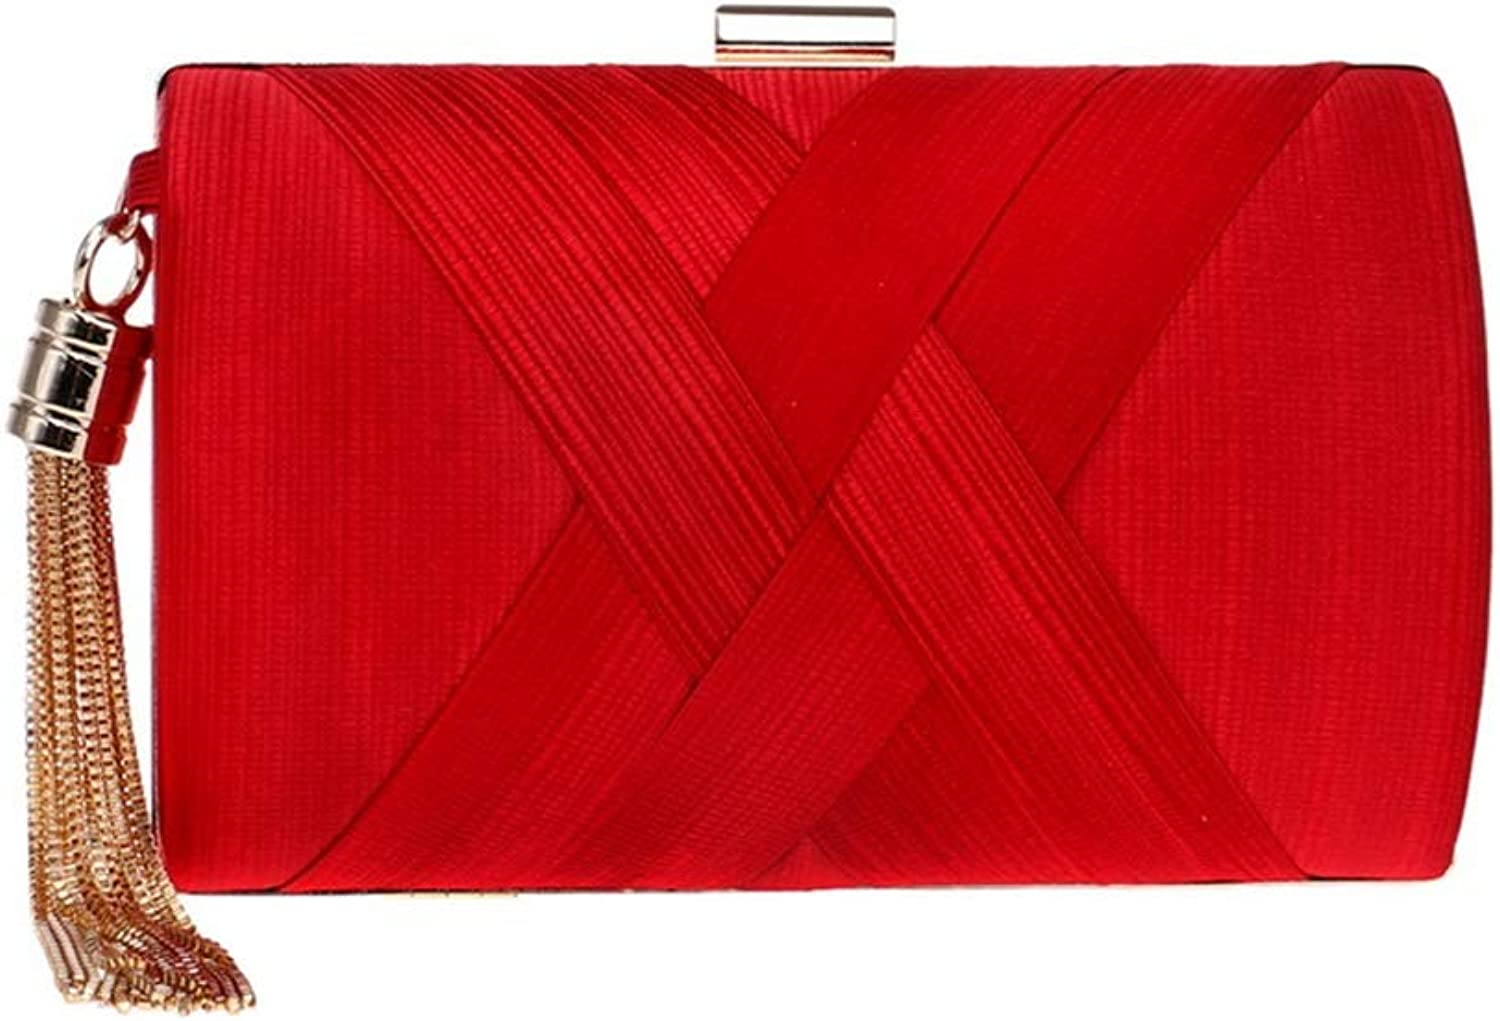 Sturdy Fashian Silk Party Evening Handbag Dress Clutch Handbag Evening Handbag Wedding Handbag Large Capacity (color   Red)